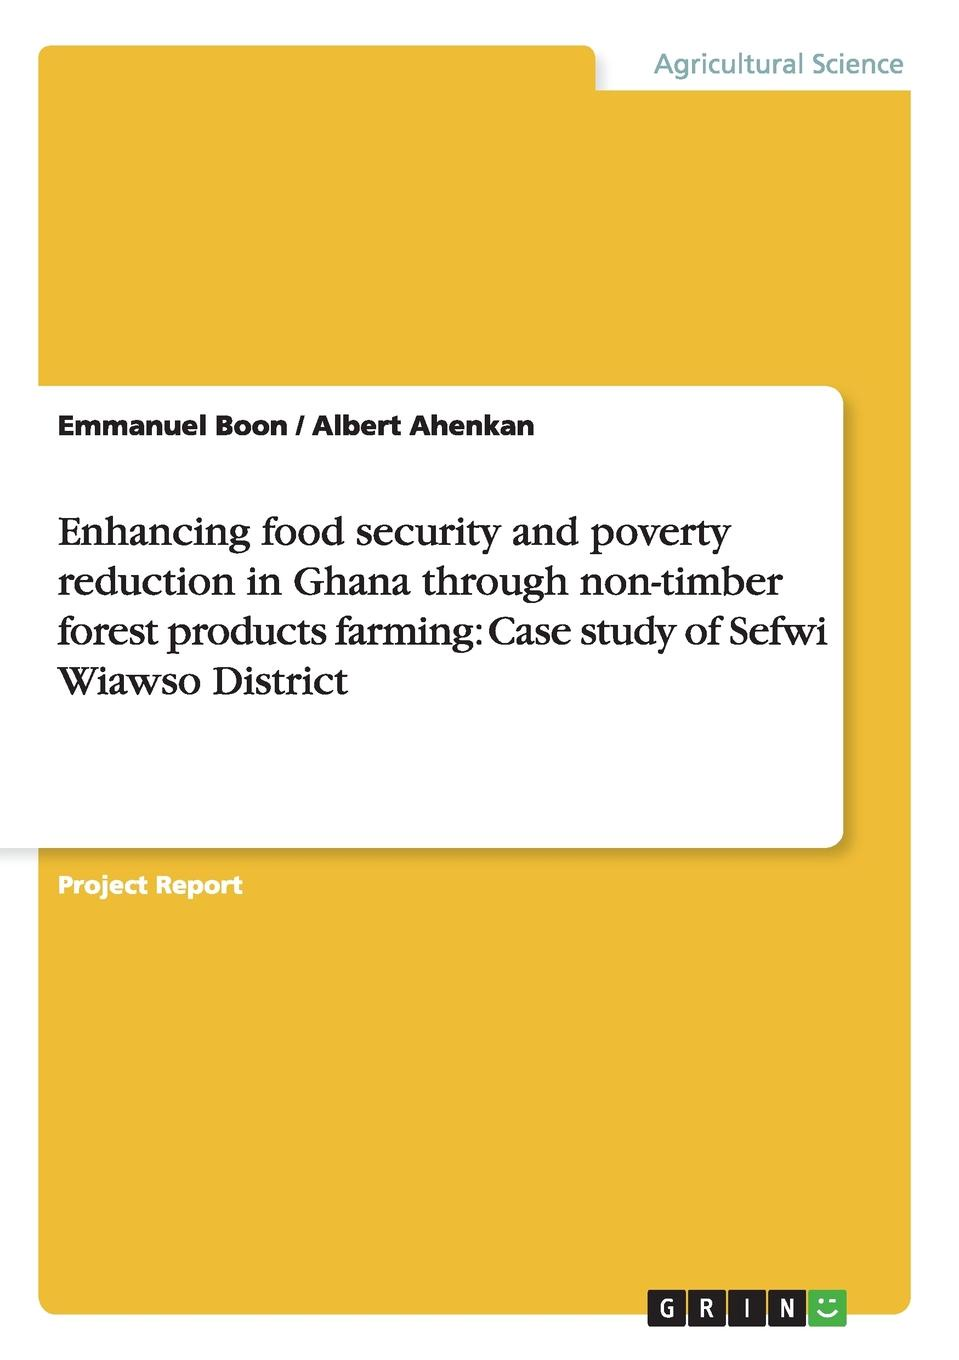 Emmanuel Boon, Albert Ahenkan Enhancing food security and poverty reduction in Ghana through non-timber forest products farming. Case study of Sefwi Wiawso District malcolm kemp extreme events robust portfolio construction in the presence of fat tails isbn 9780470976791